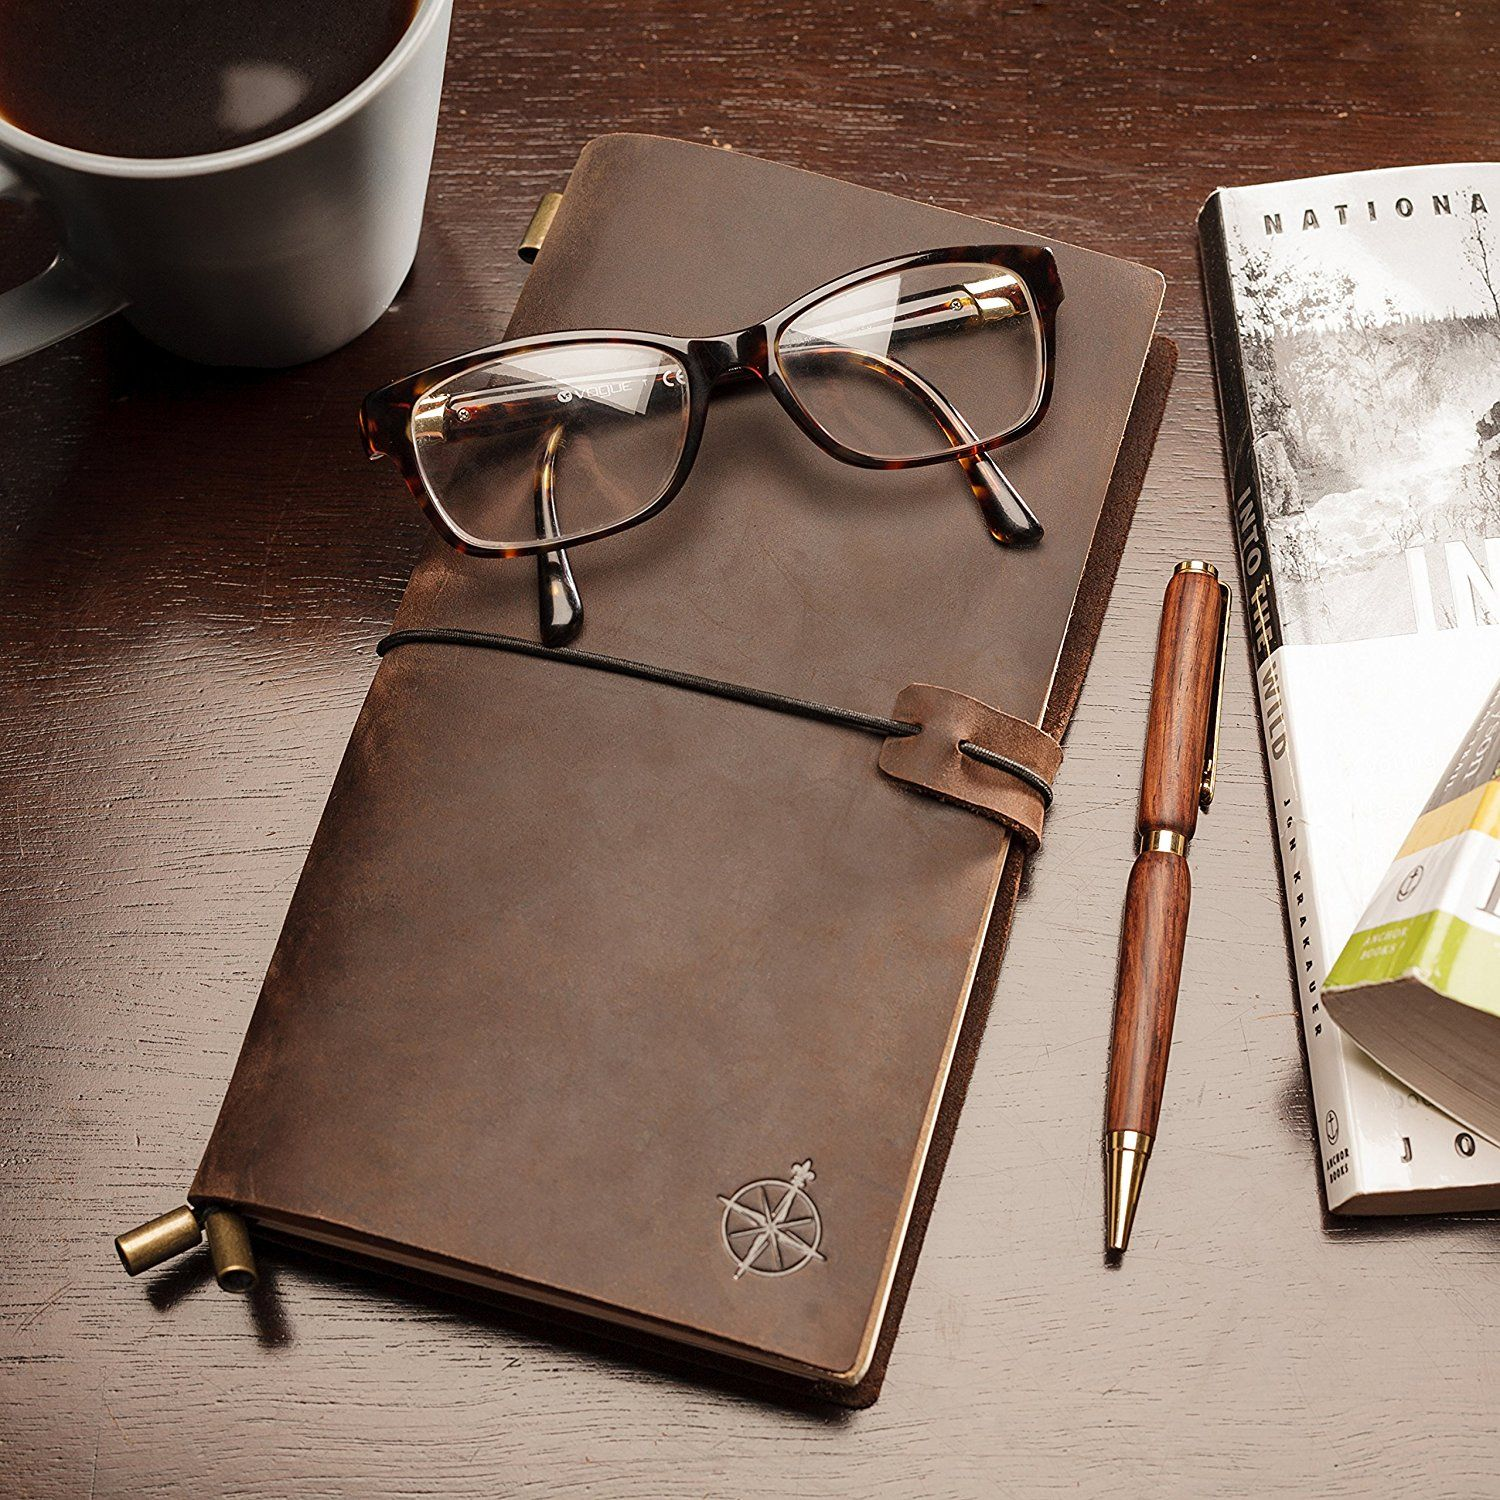 7aa371e4372 Amazon.com : Wanderings Leather Notebook Journal   Leather Bound,  Refillable   Perfect for Writing, Gifts, Fountain Pen Users, Travelers,  Professional, ...